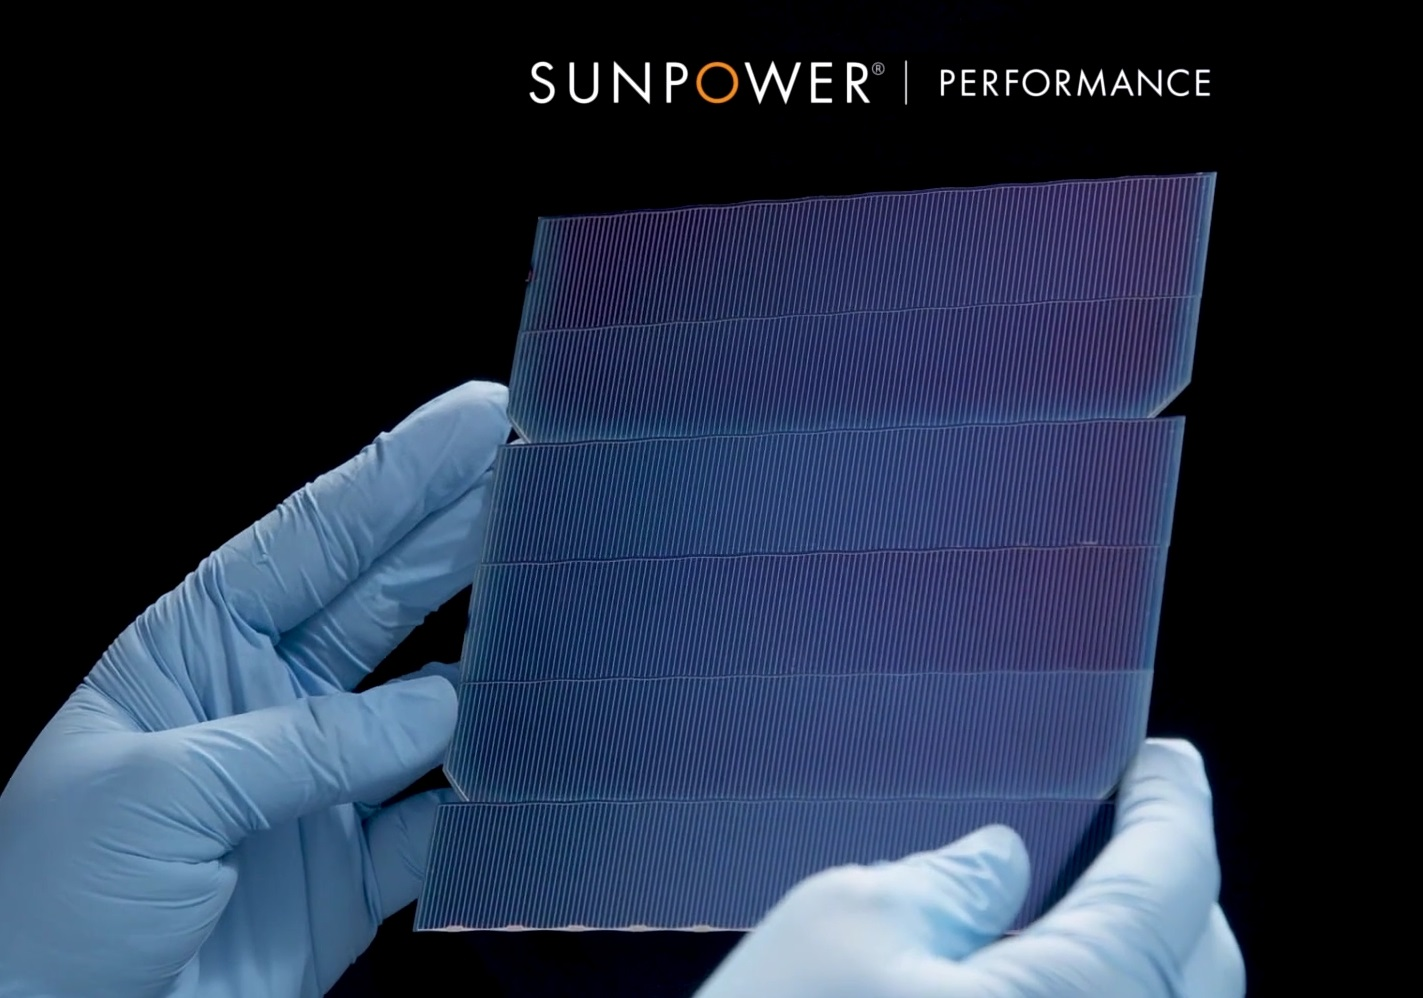 SunPower P series panels use P-type shingled cells - Image credit SunPower Corp